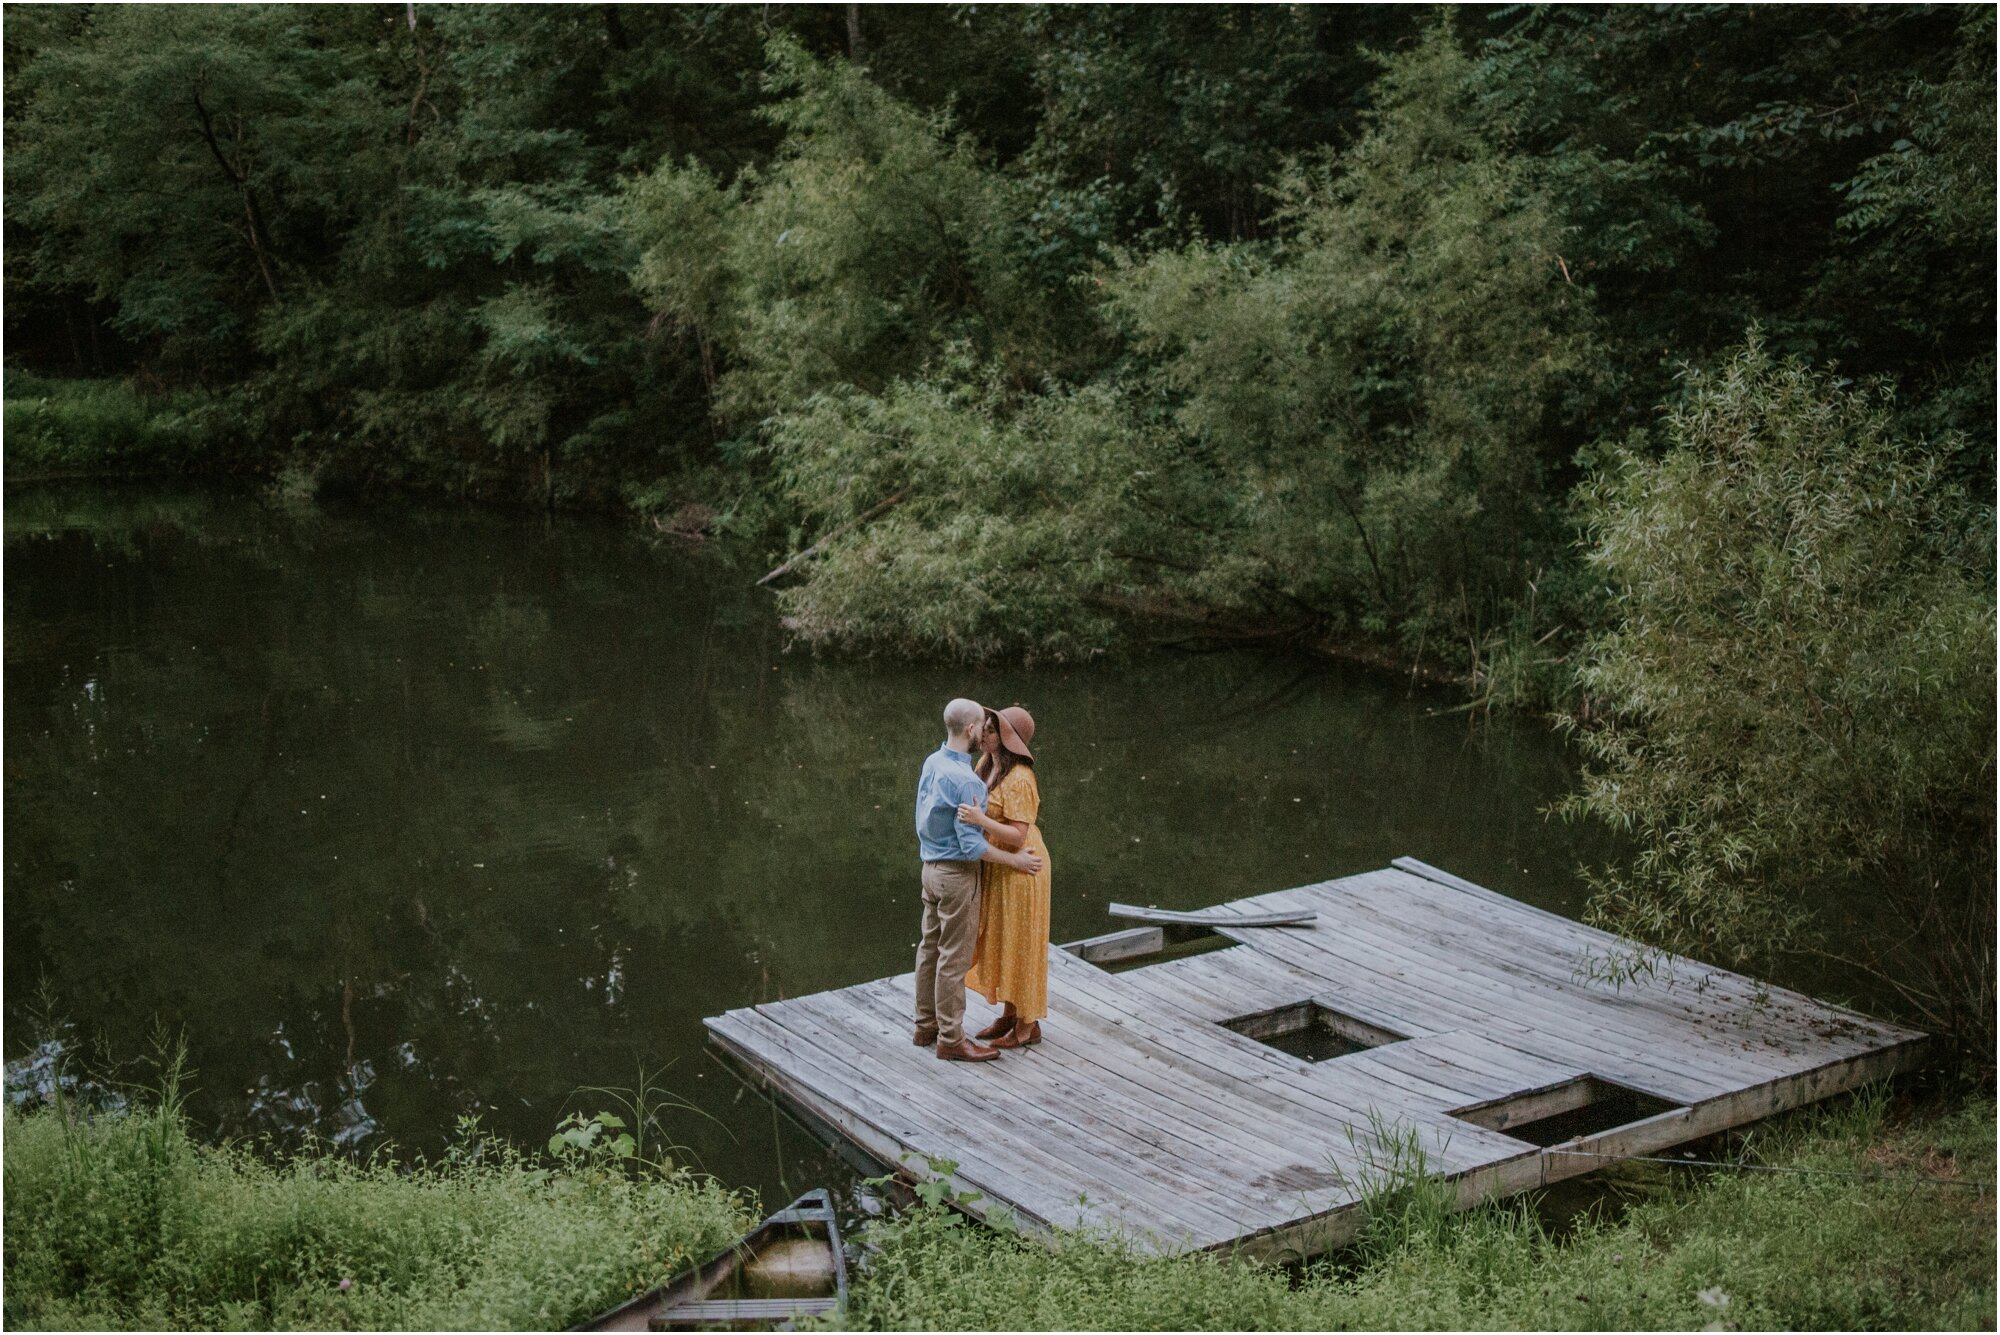 kingsport-tennessee-backyard-pond-bays-mountain-summer-engagement-session_0053.jpg